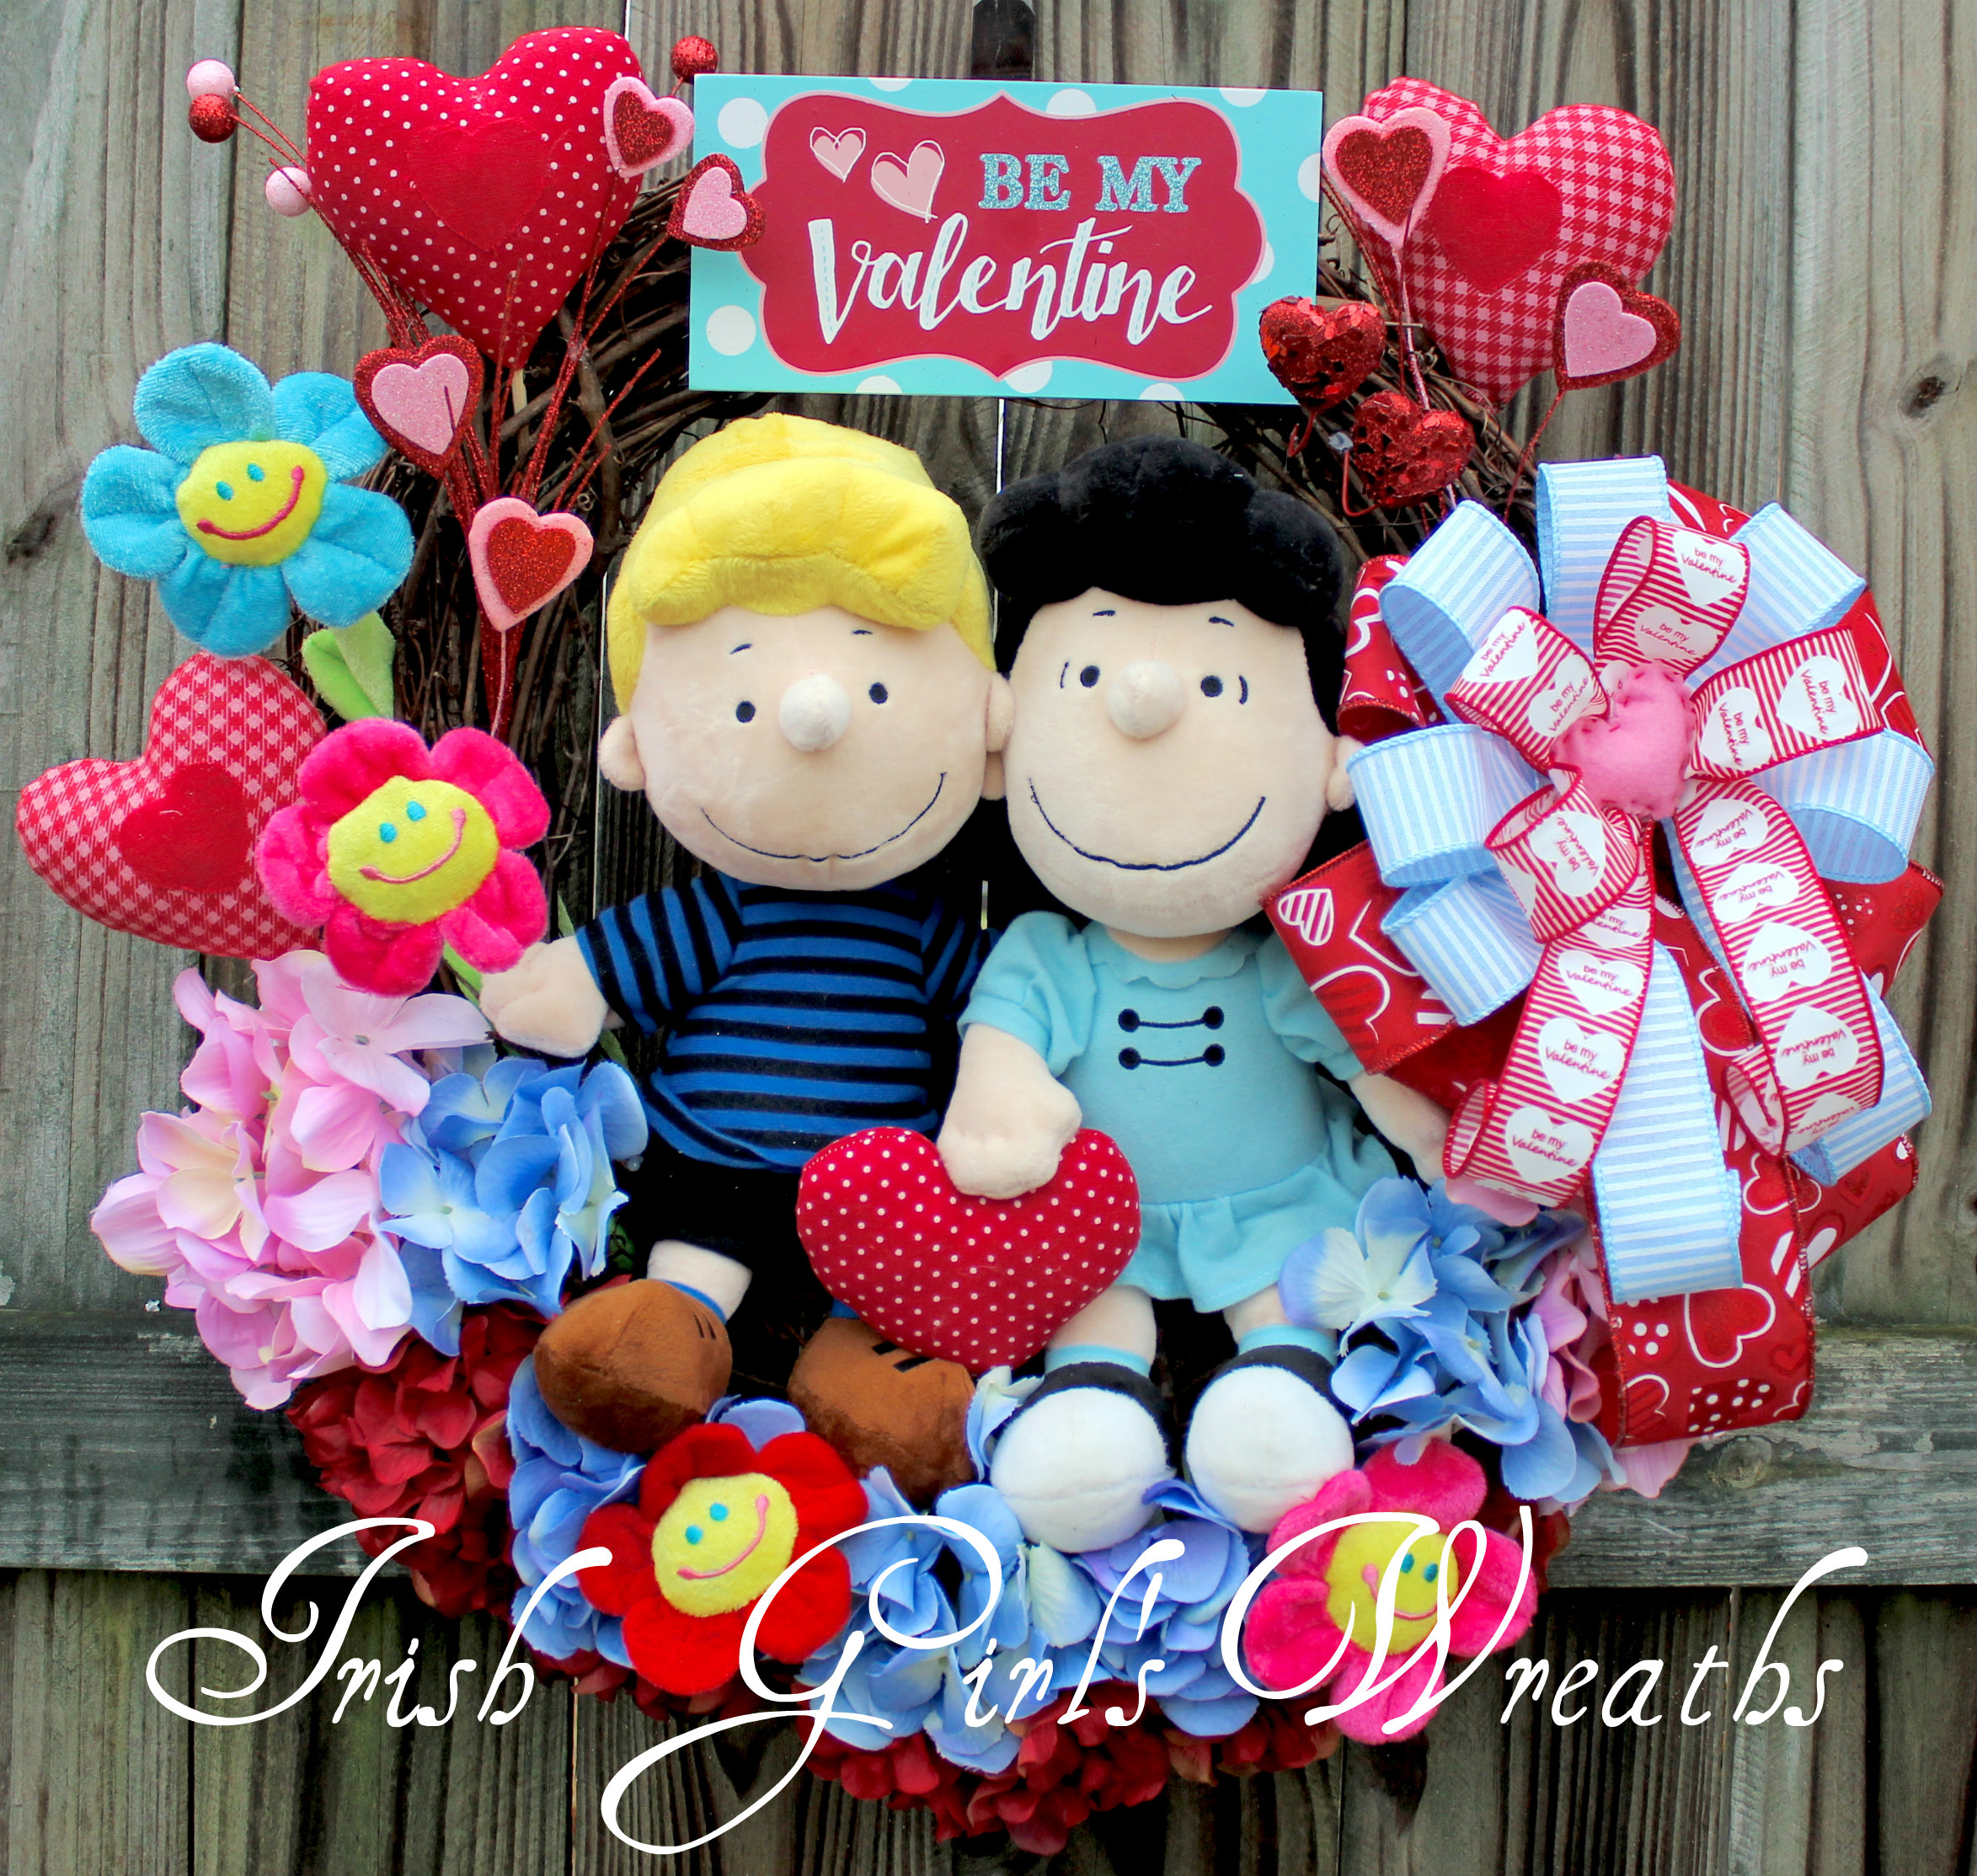 Peanuts Lucy and Schroeder Be My Valentine Wreath #4